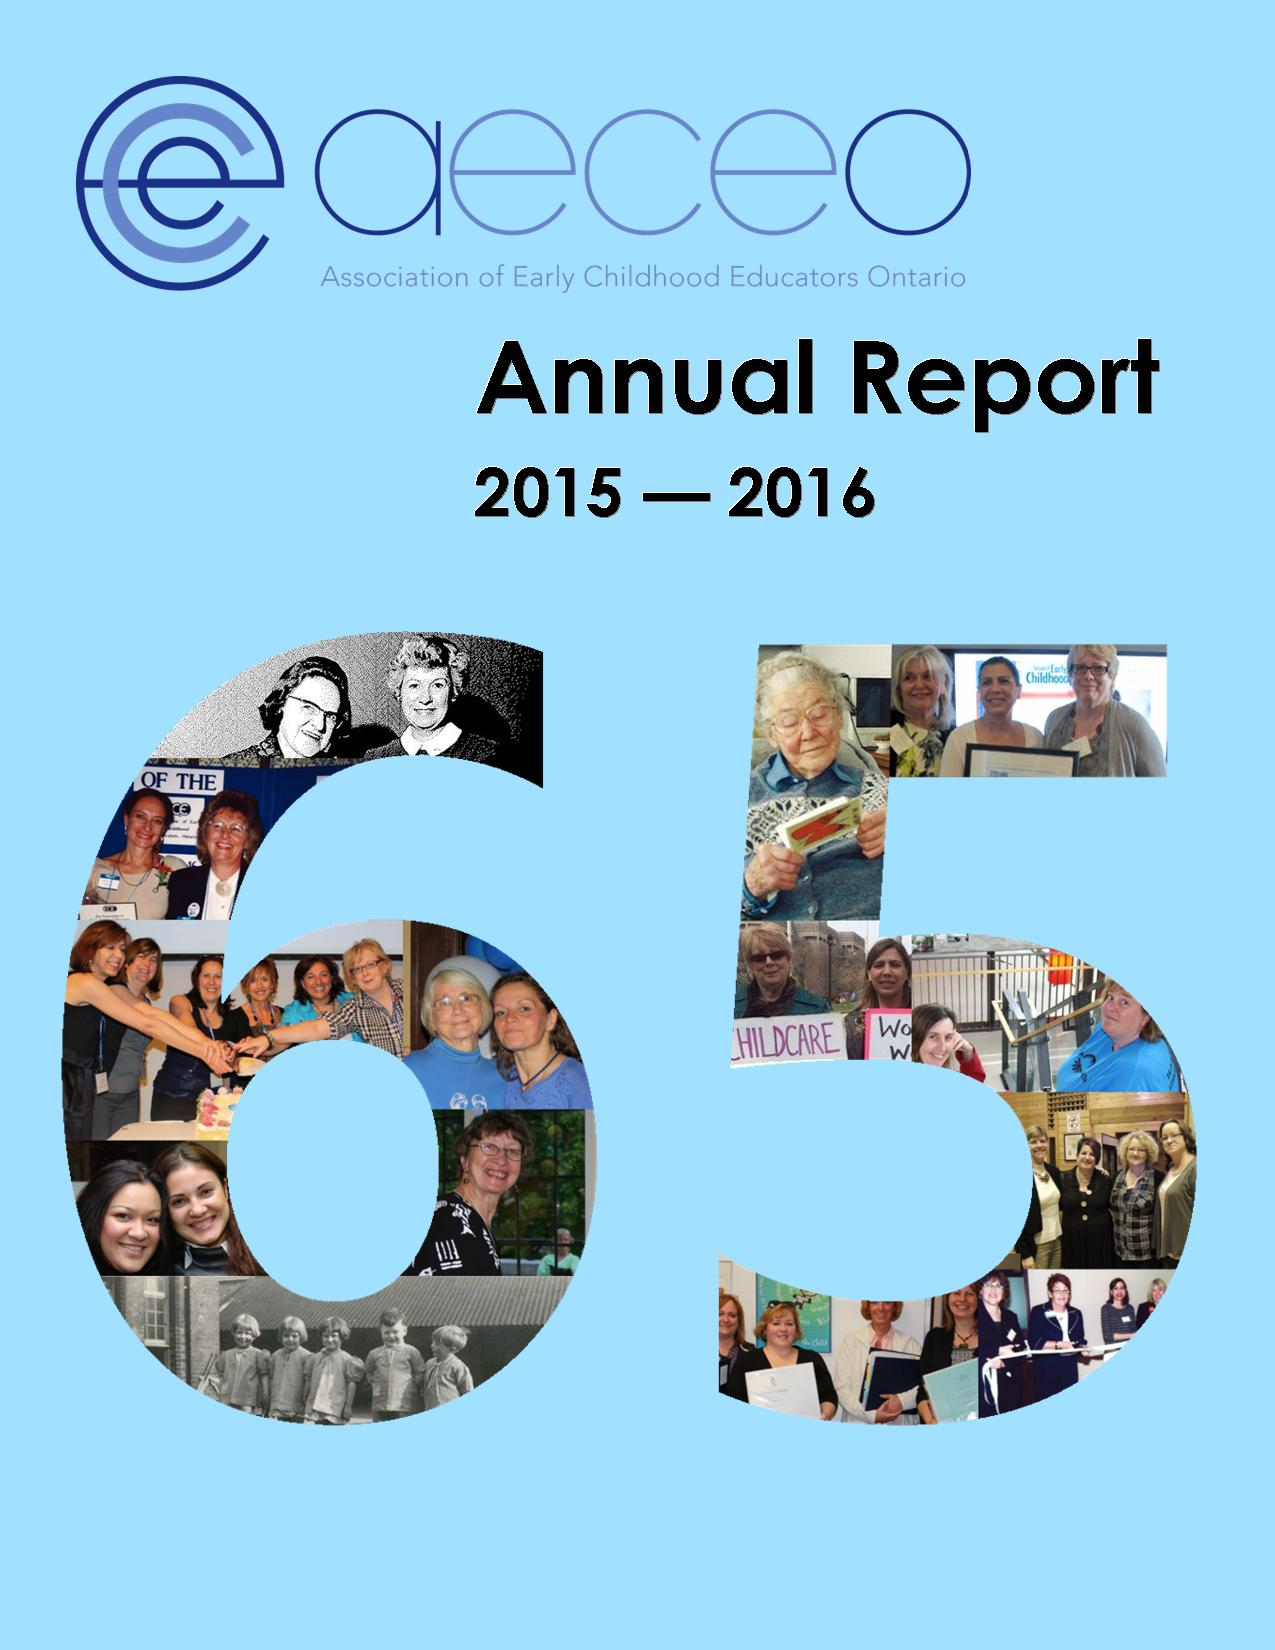 Cover_of_AECEO_Annual_Report_2015-2016.jpg